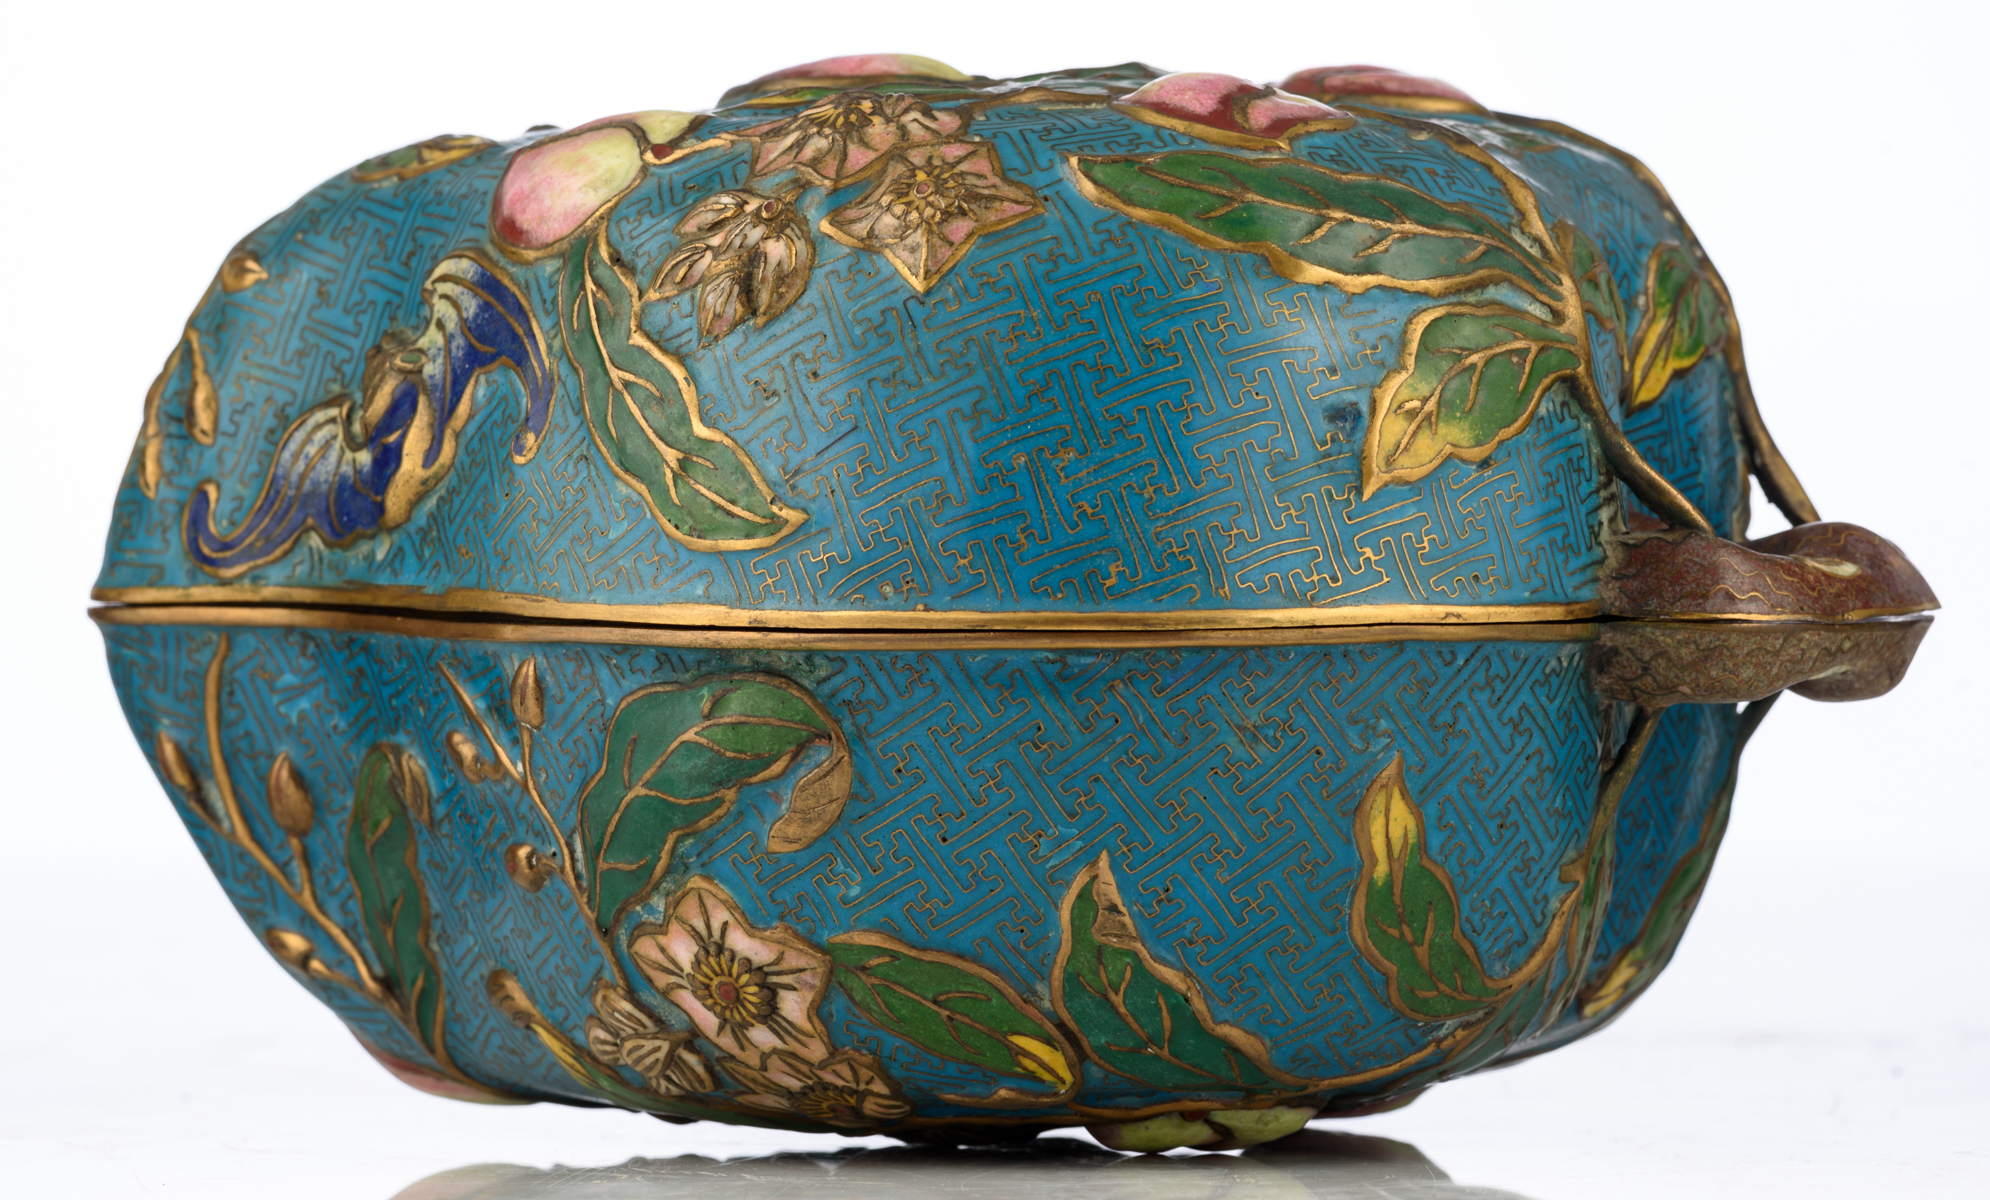 Lot 4 - A Chinese peach shaped cloisonné box and cover, the outside with the symbolic nine peaches relief